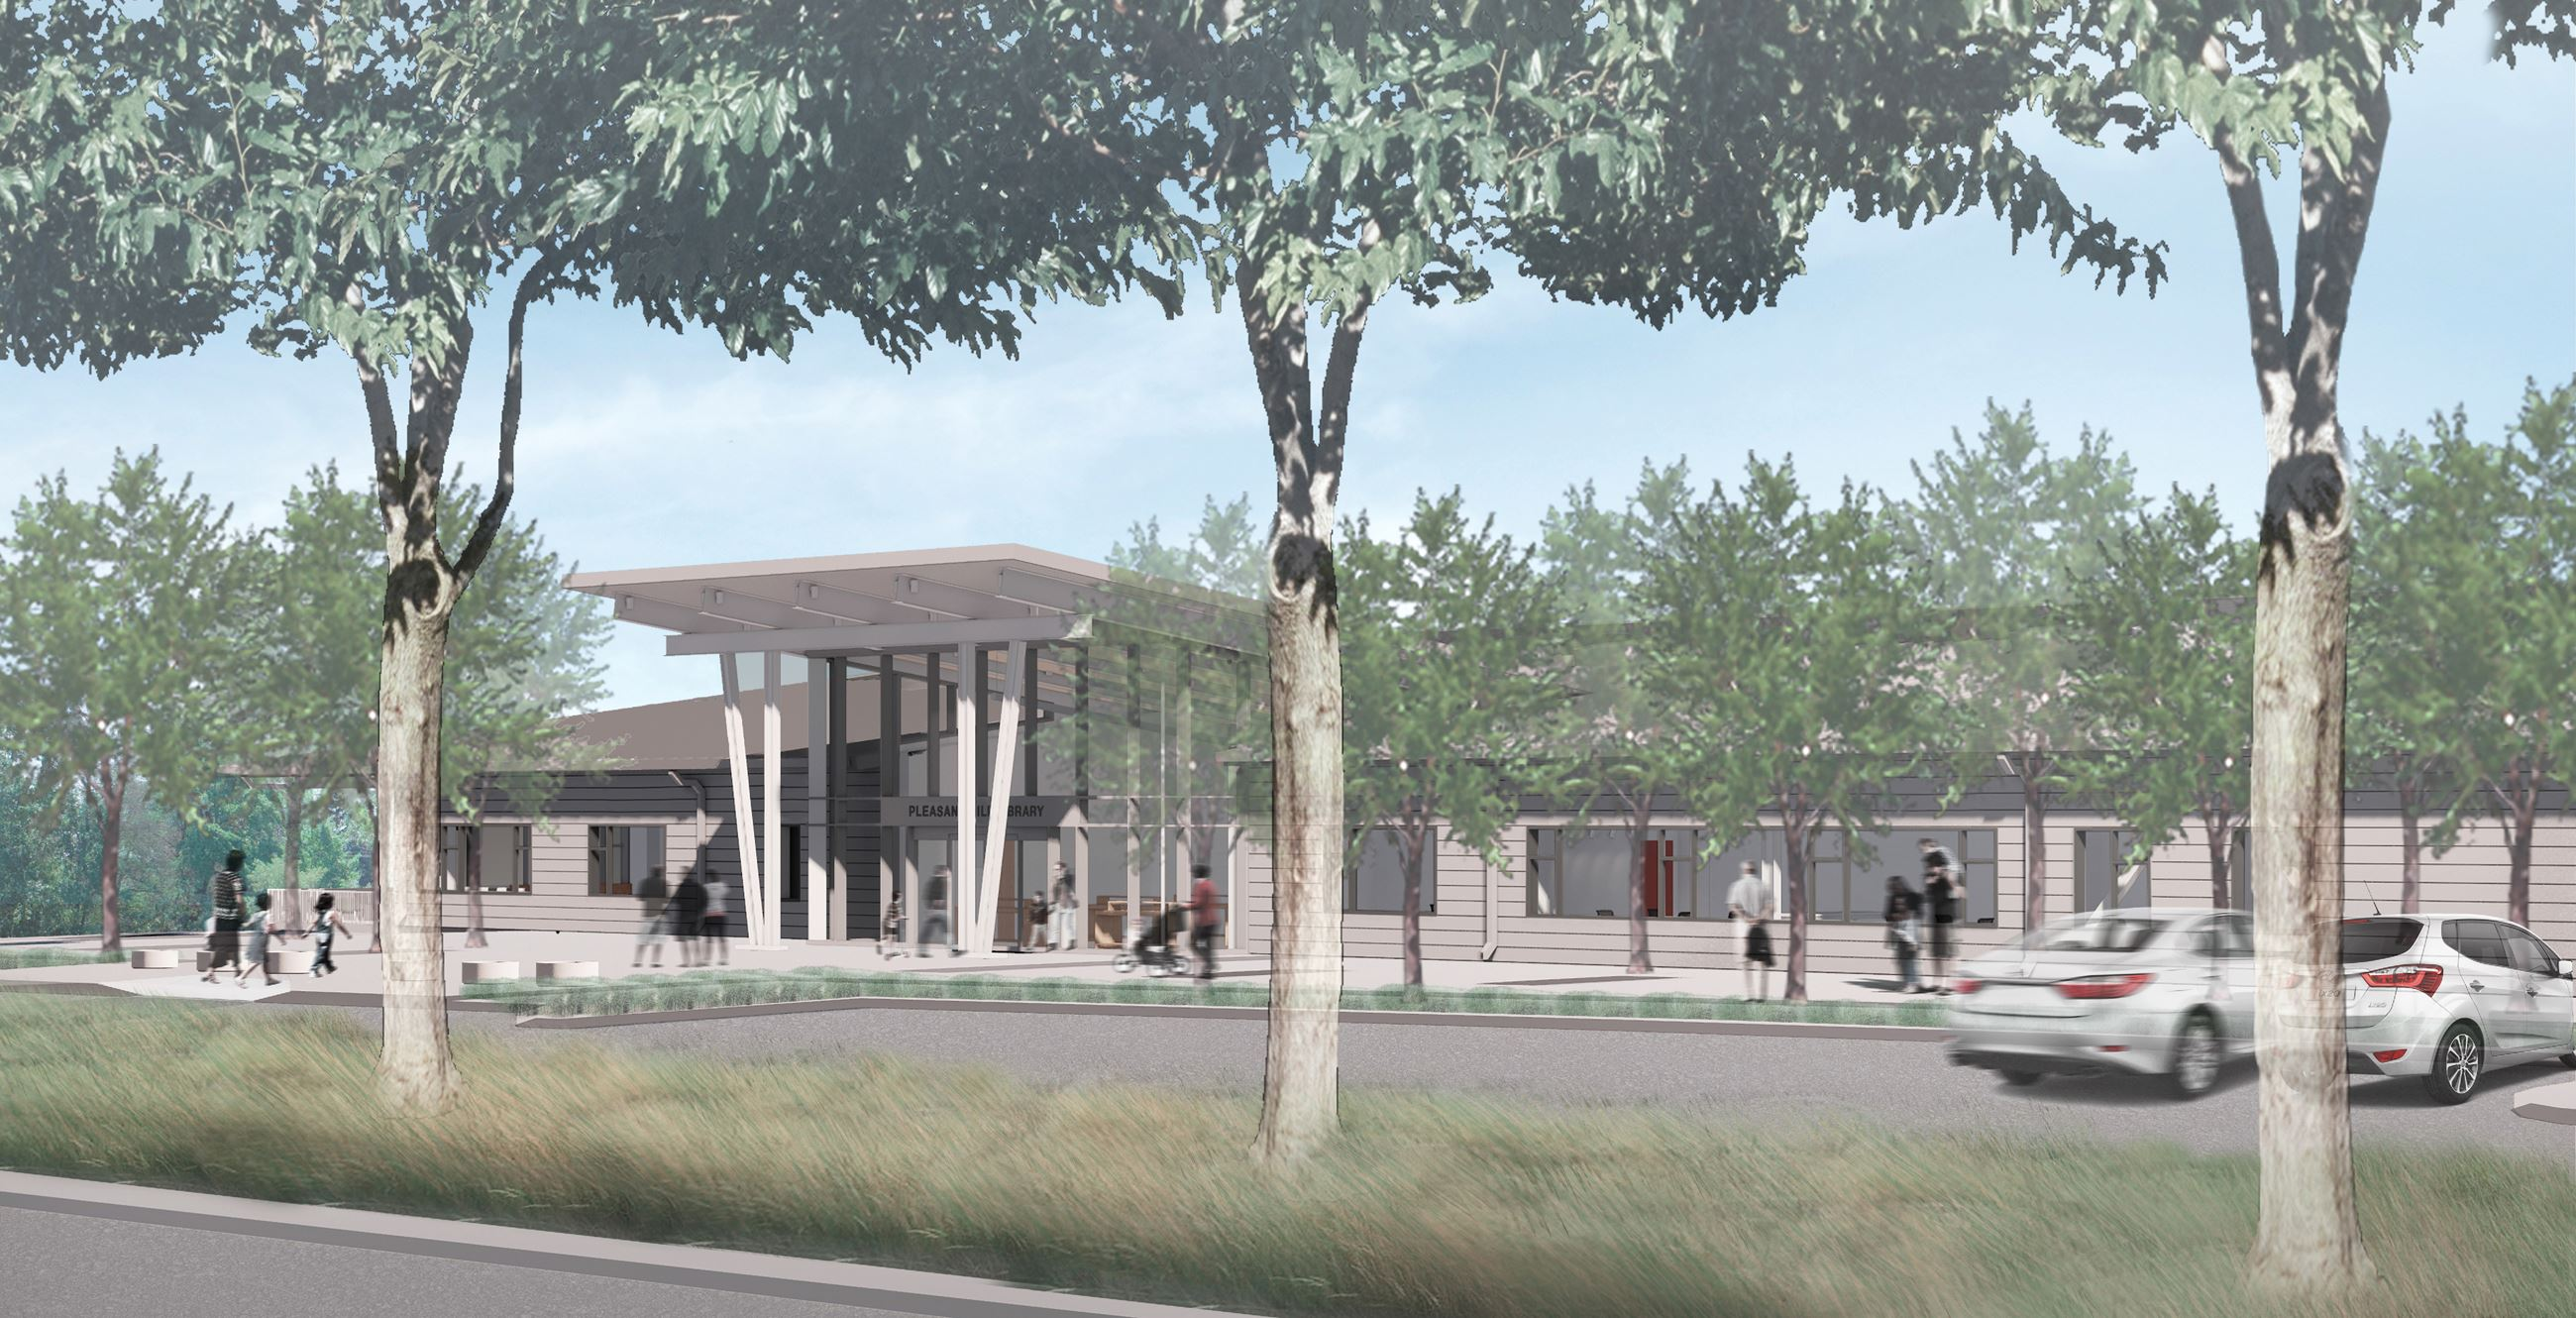 Rendering of new Pleasant Hill Library - Exterior view of library from parking lot